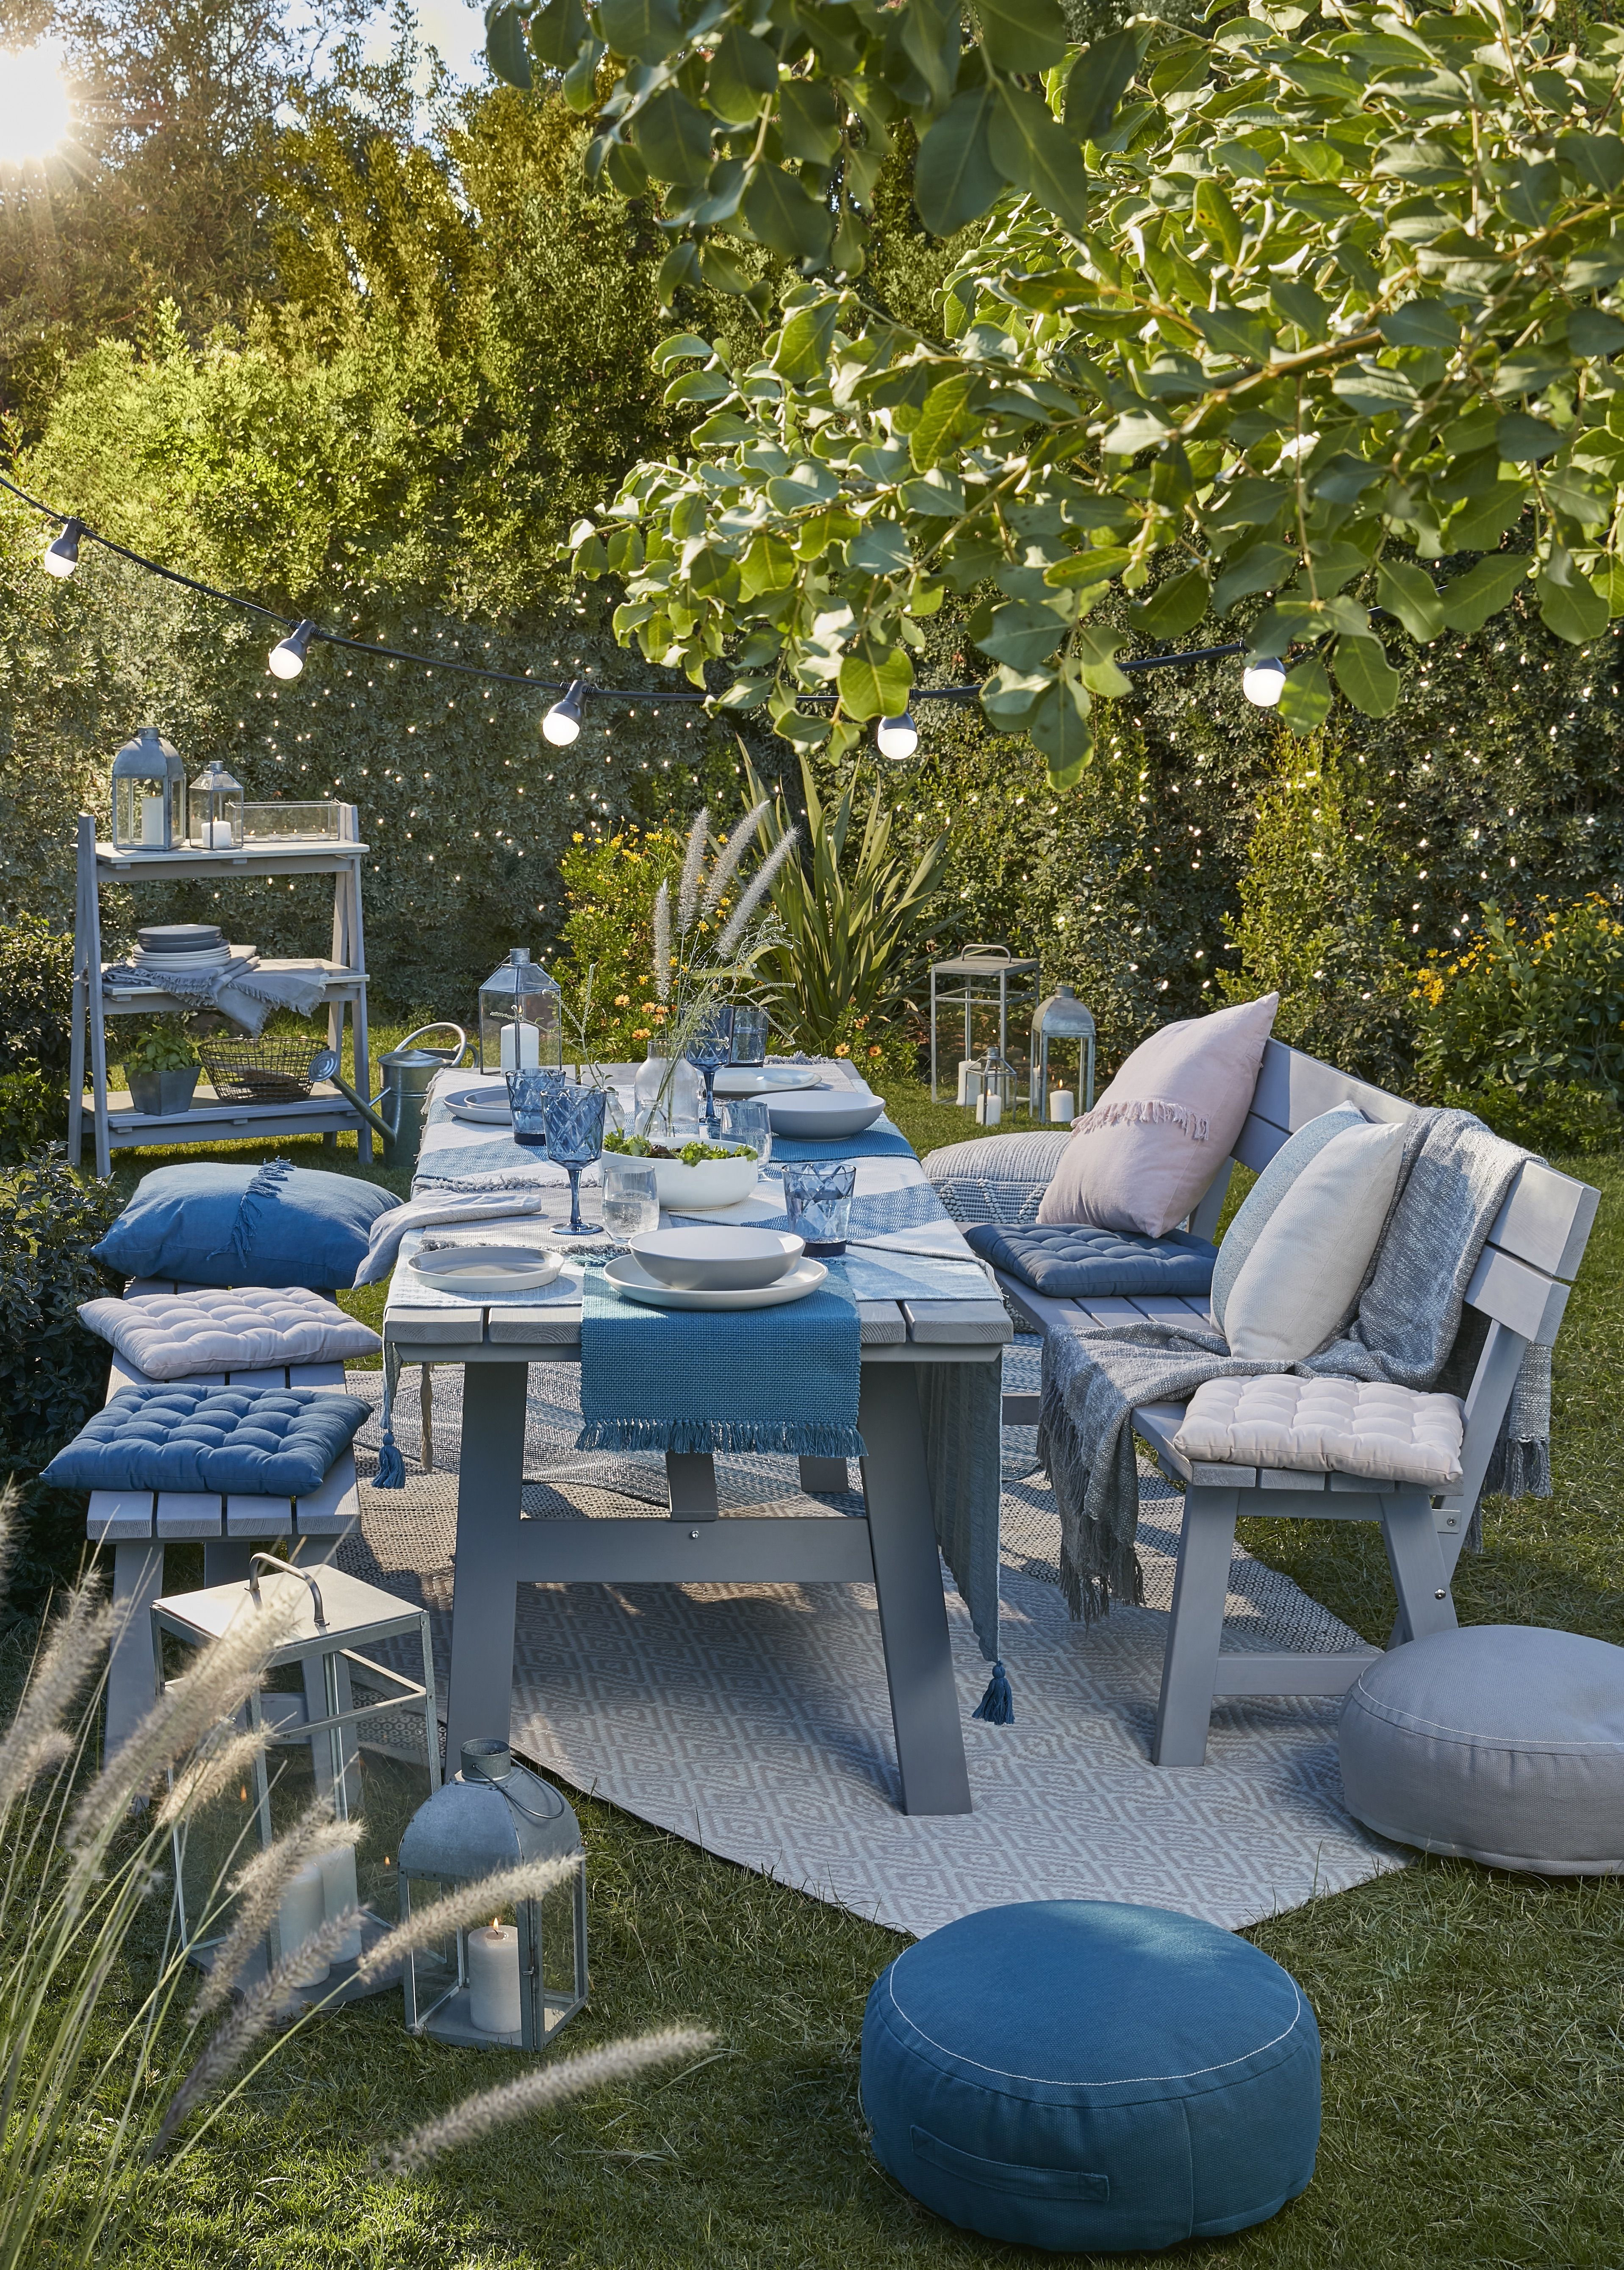 Create a timeless and stylish outdoor space with B&Q's NEW